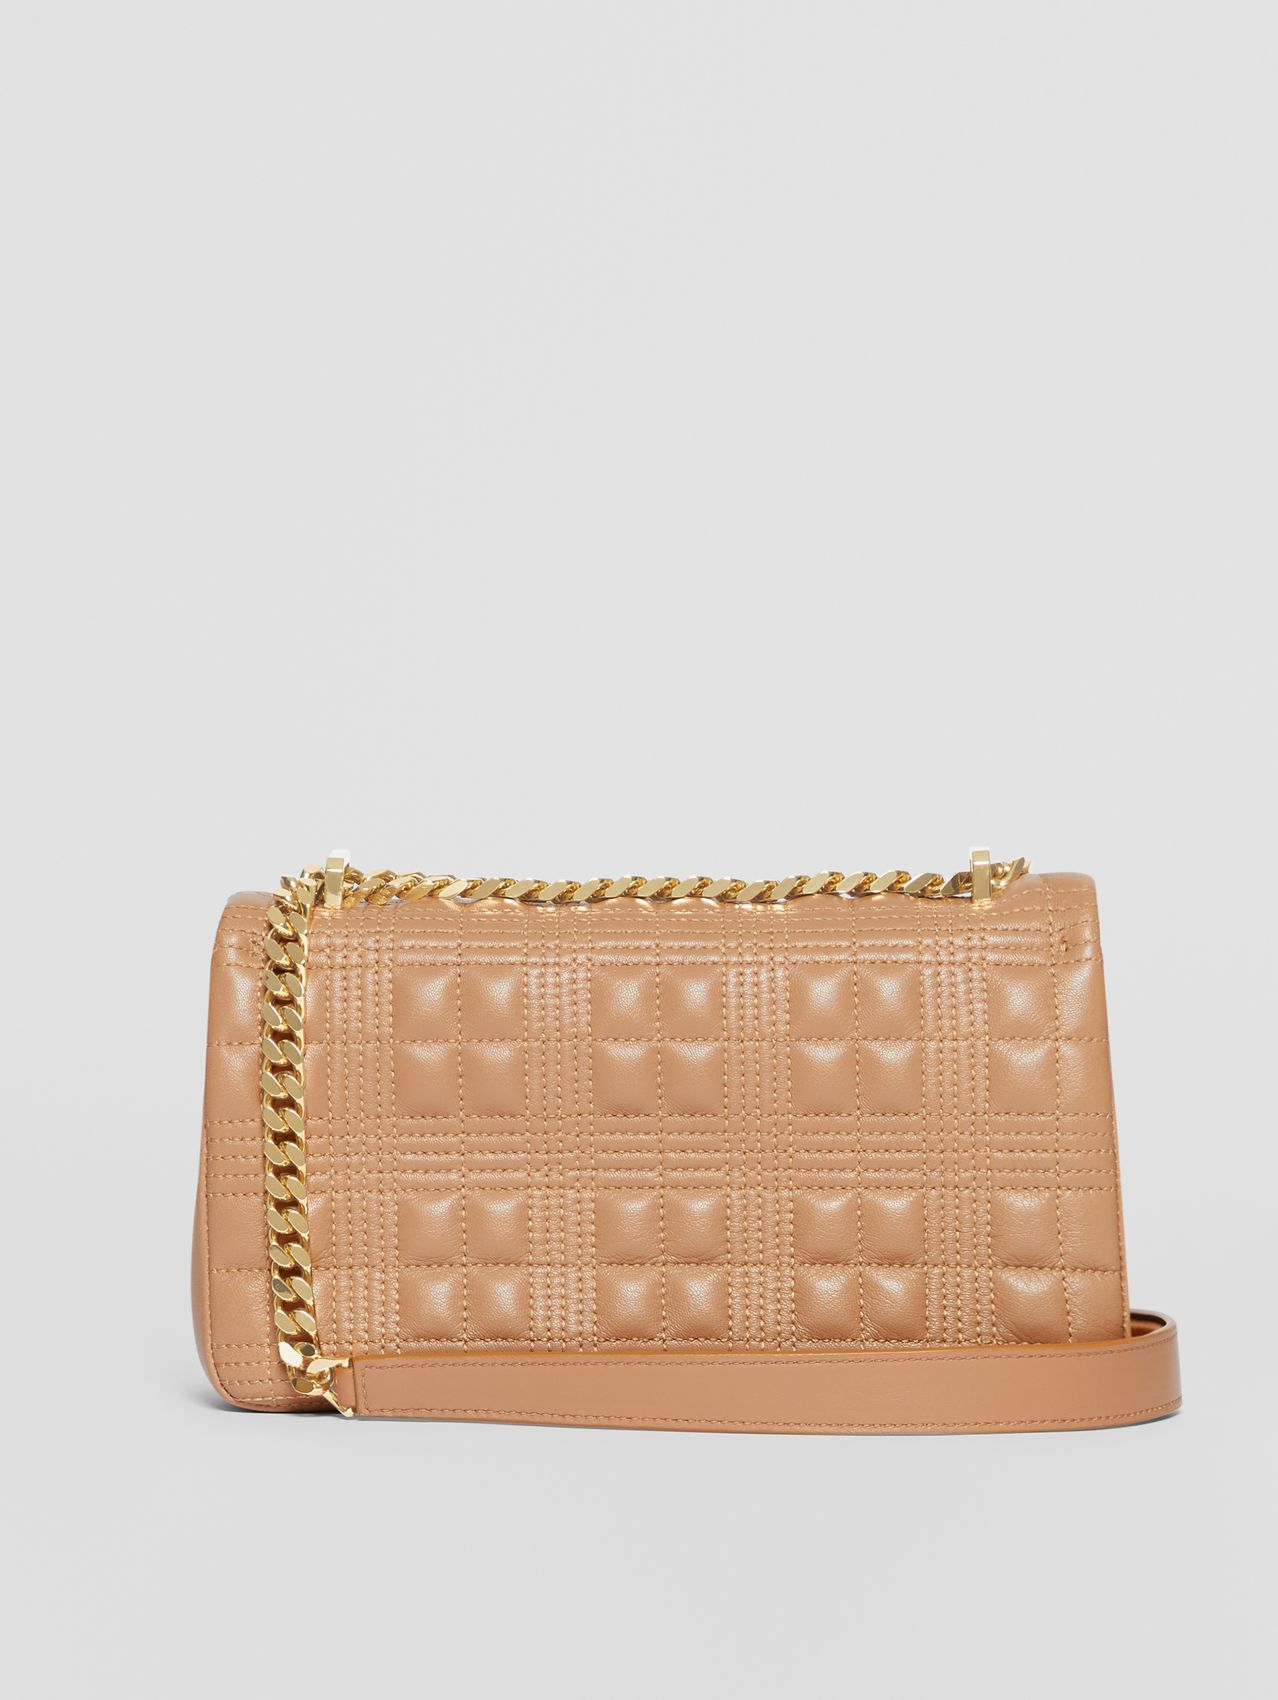 Small Quilted Lambskin Lola Bag in Camel